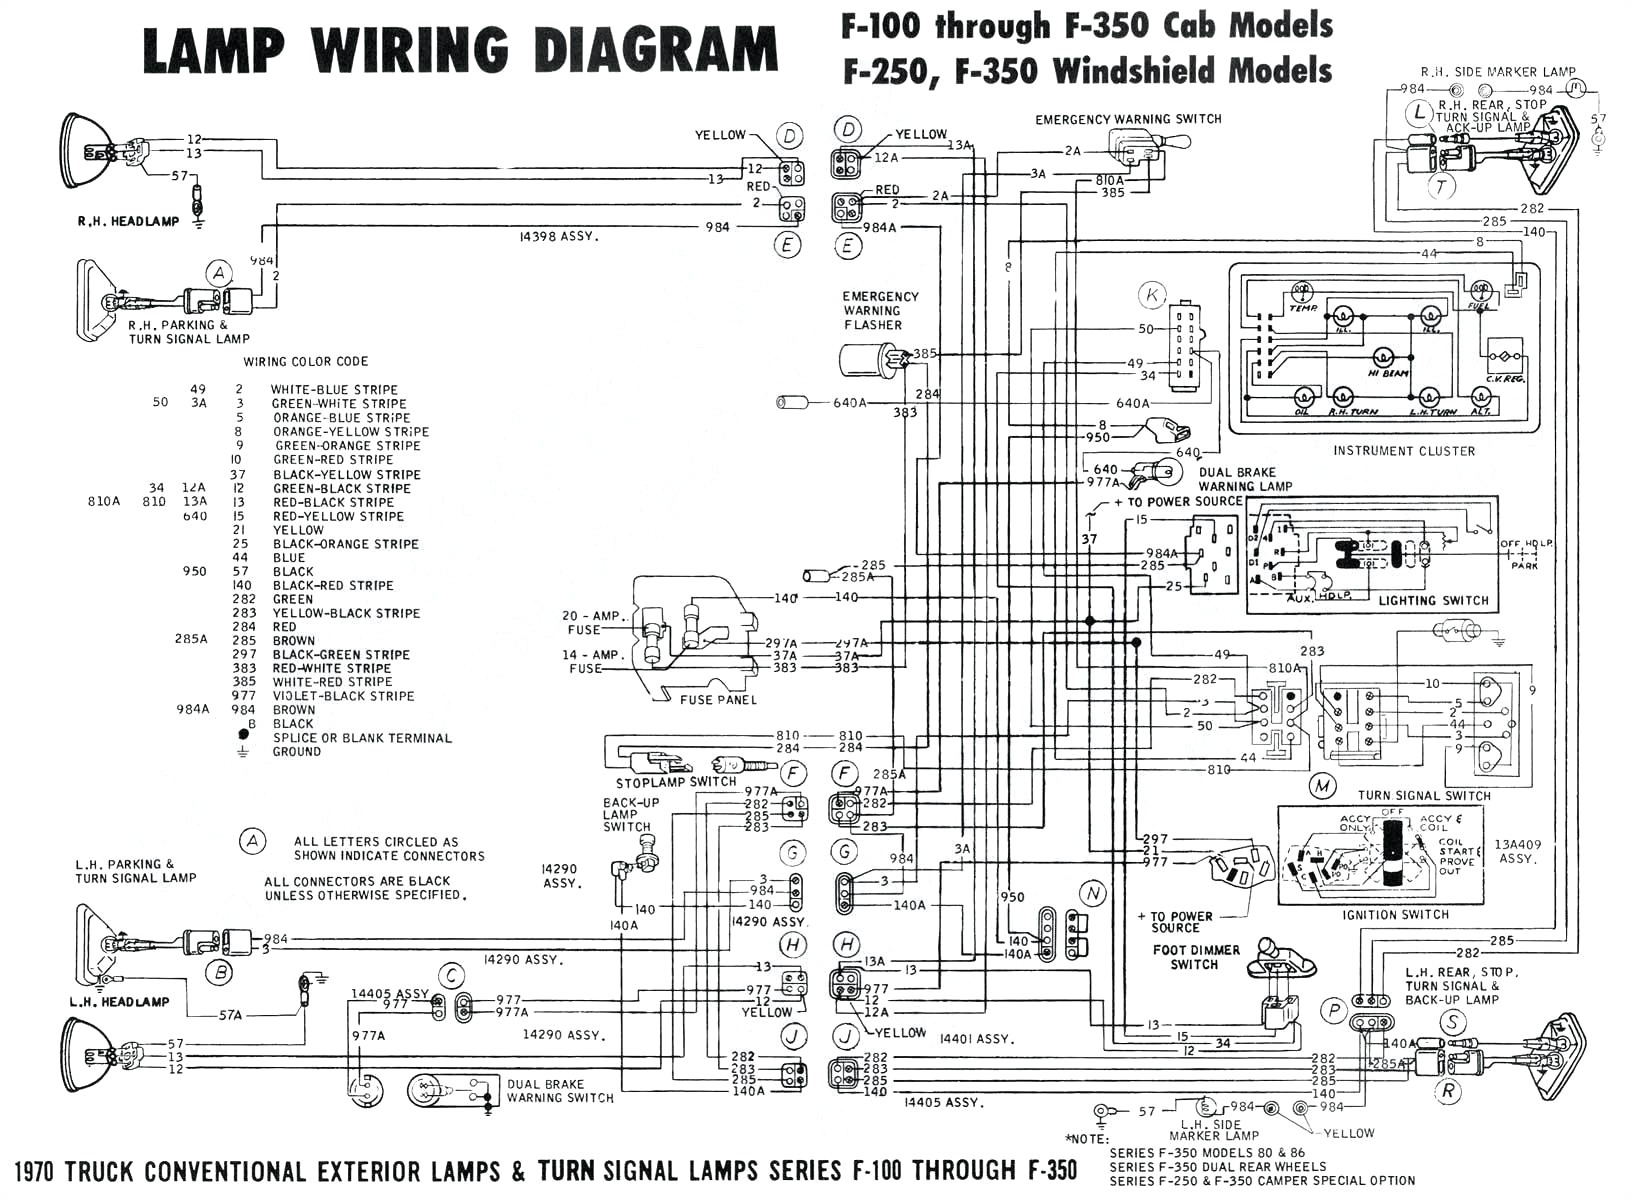 2001 ford steering column wiring harness wiring diagram files 2001 ford steering column wiring harness wiring